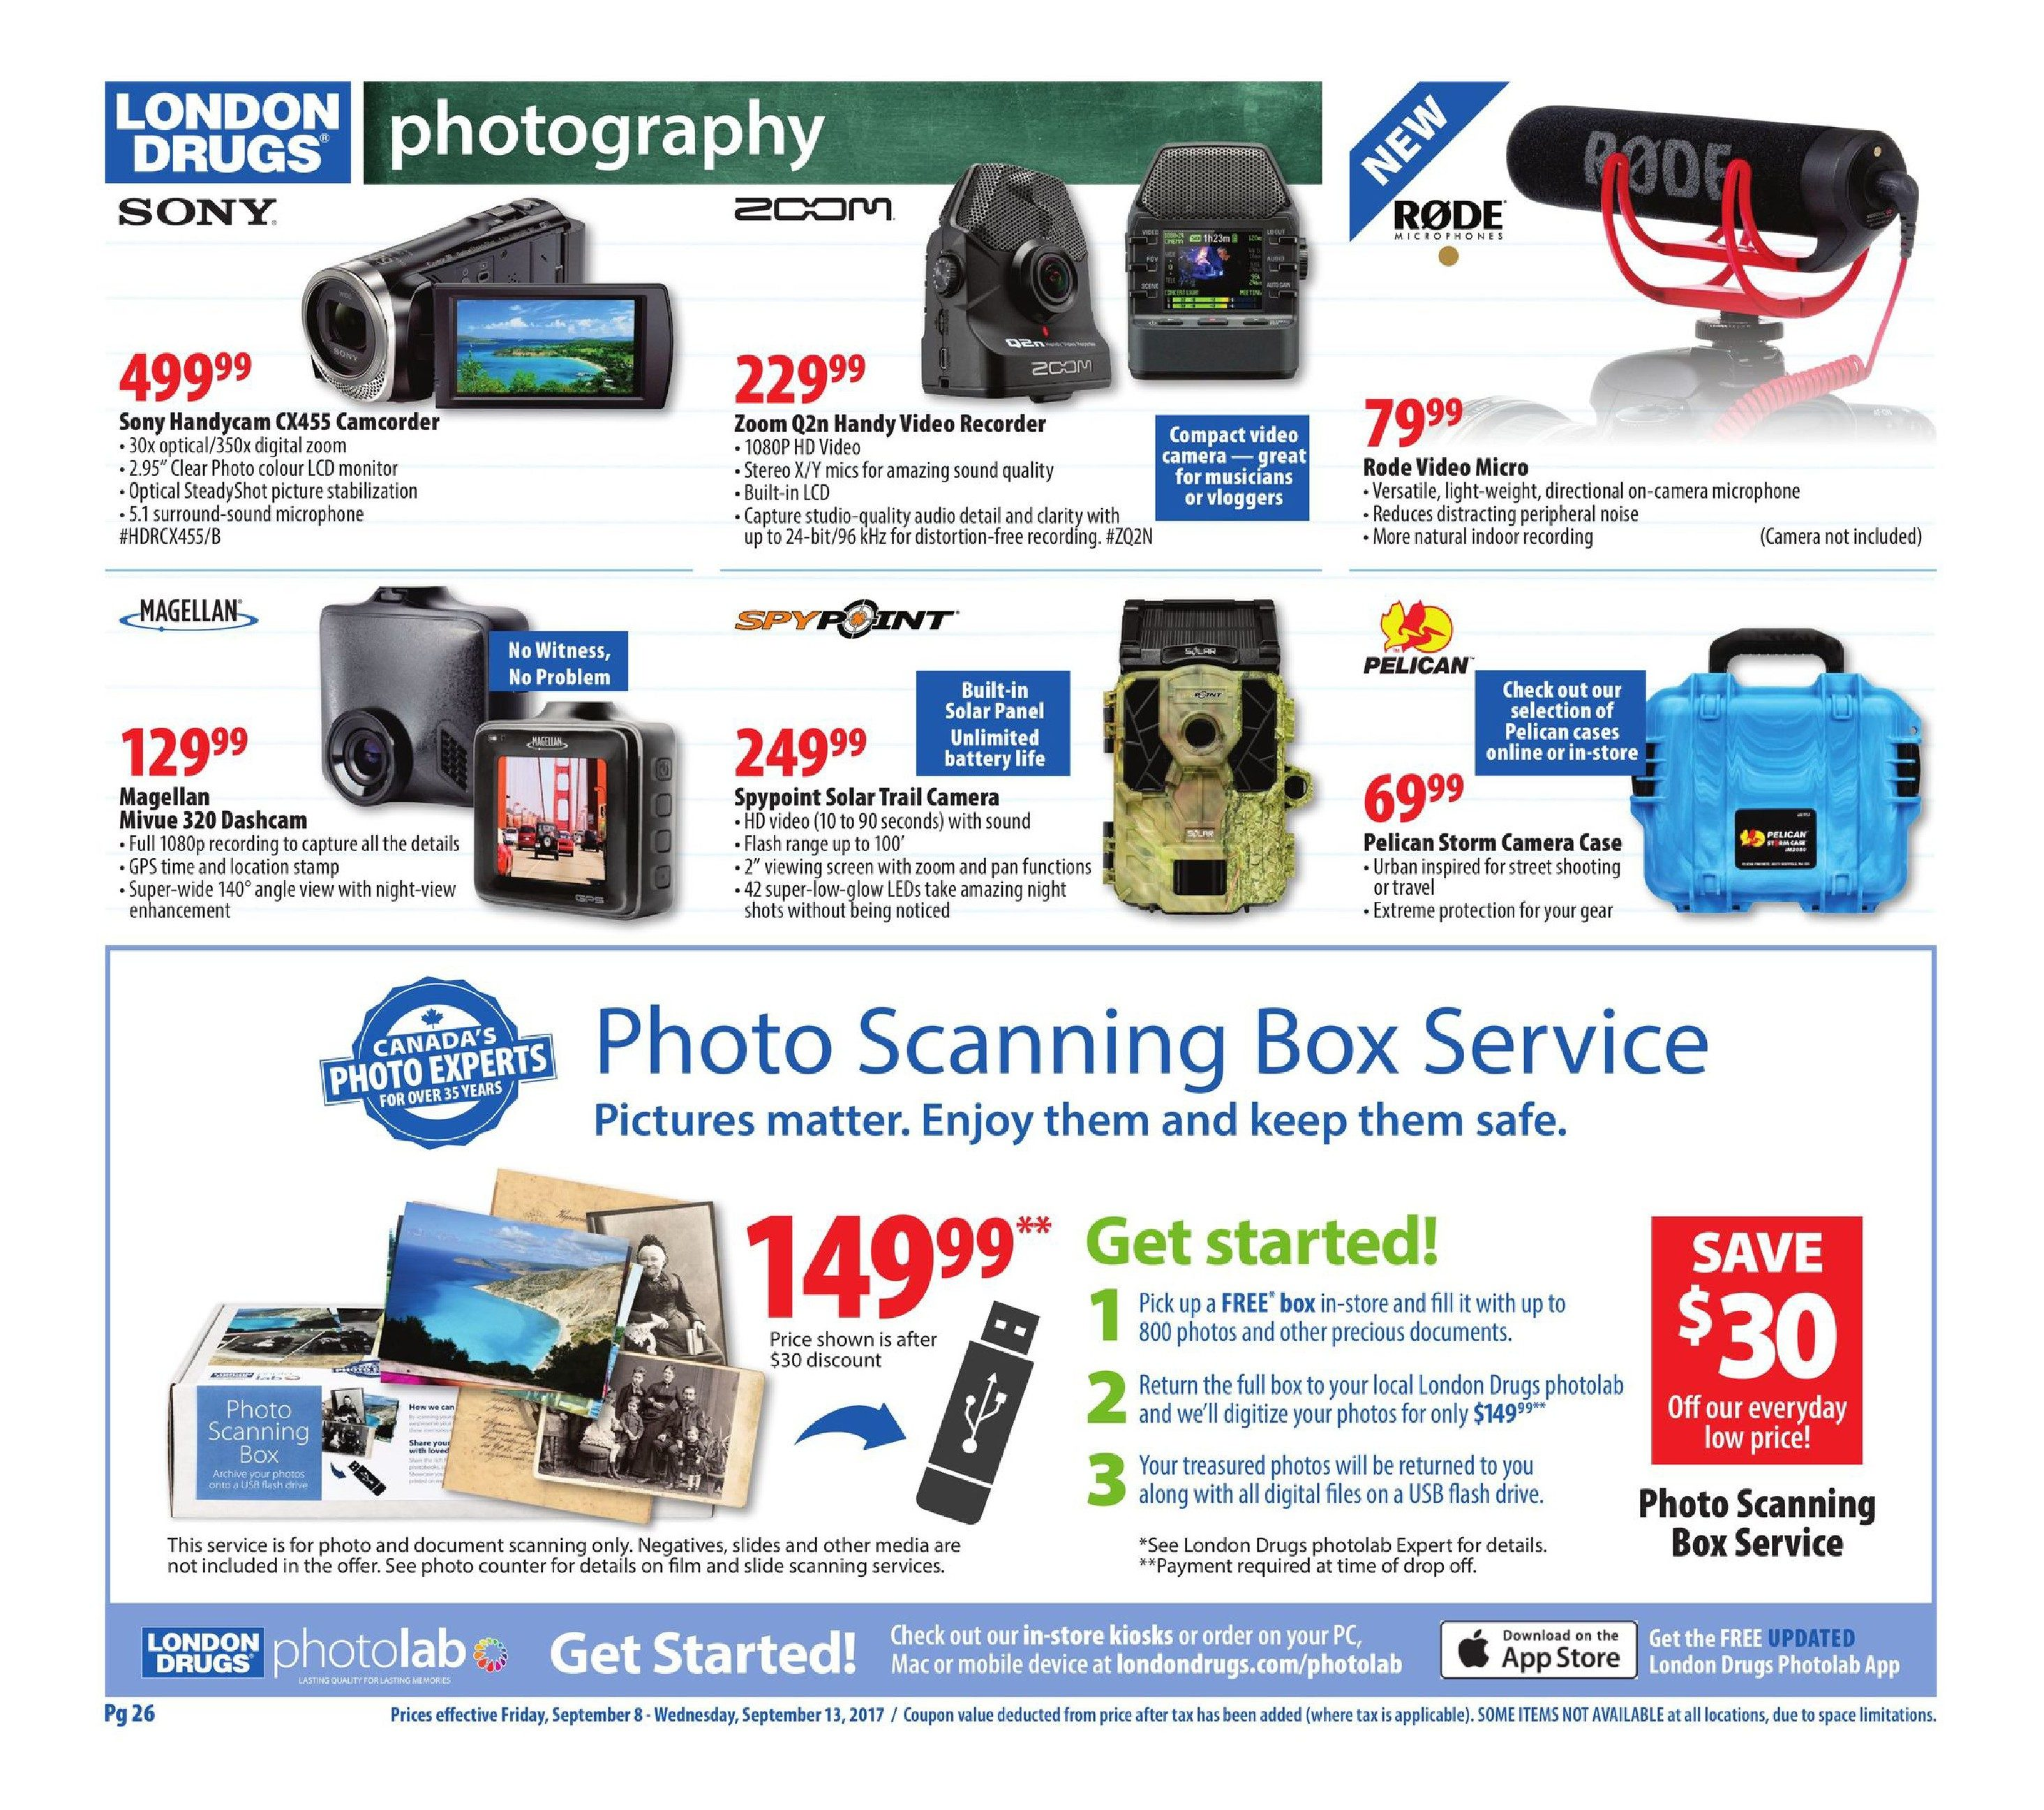 London Drugs Weekly Flyer Back To Busy Essentials Sep 8 13 The Single Large Doublesided Circuit Board From A Canon Canola